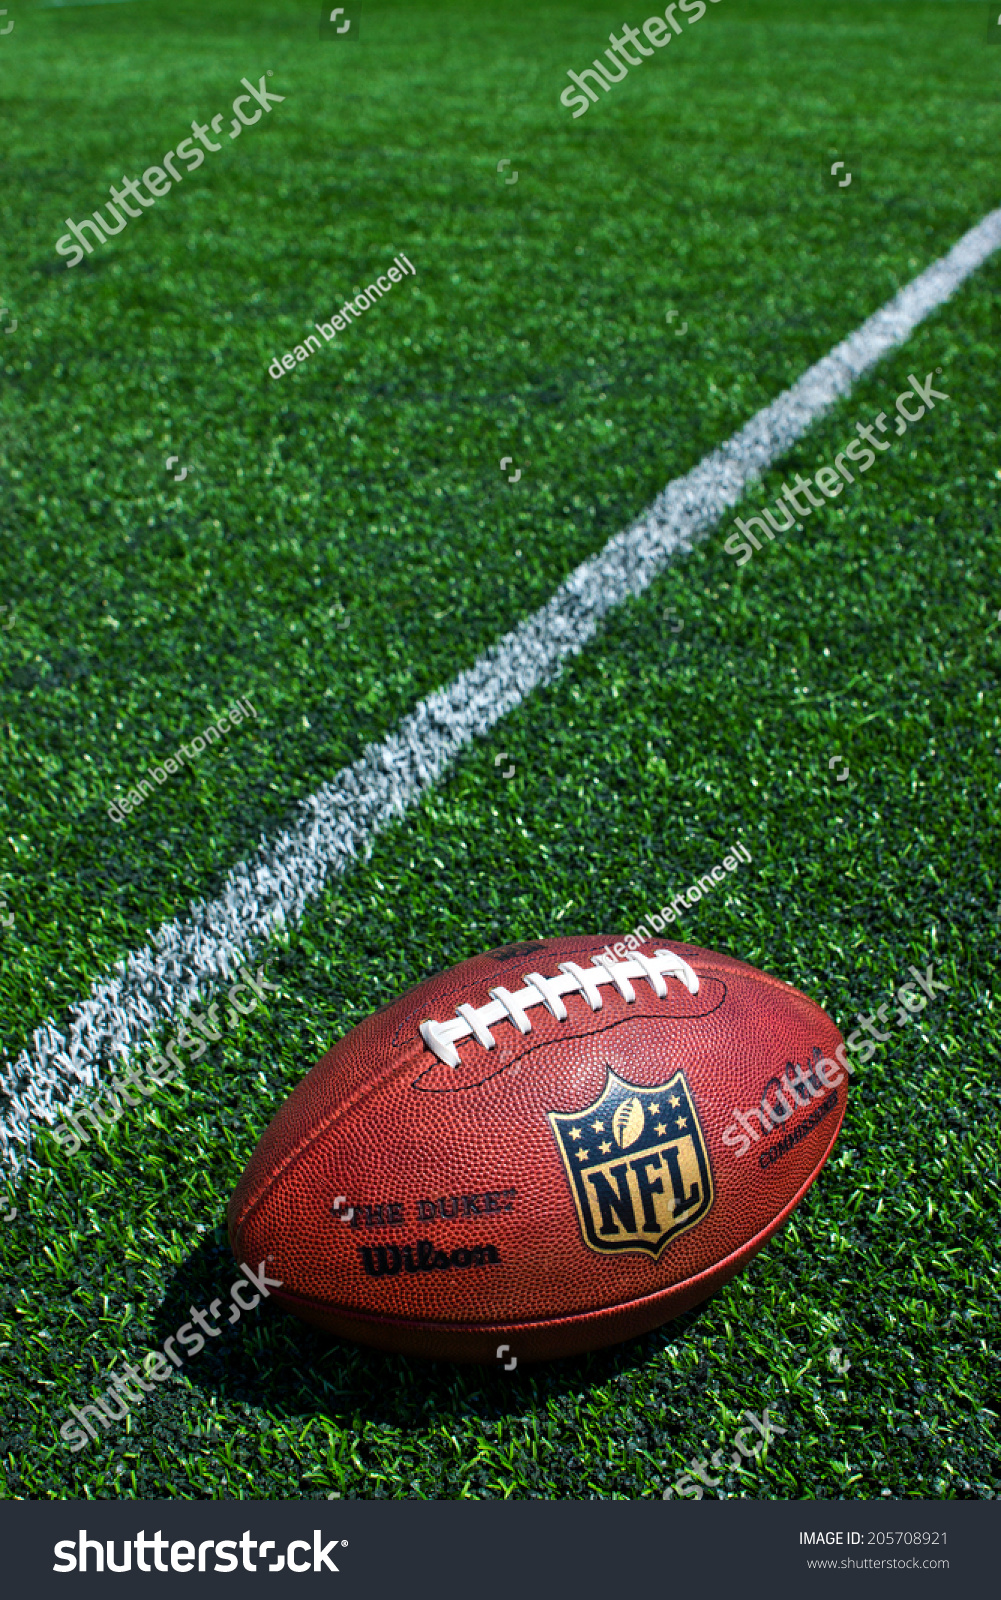 Nfl Football Grass Bac...